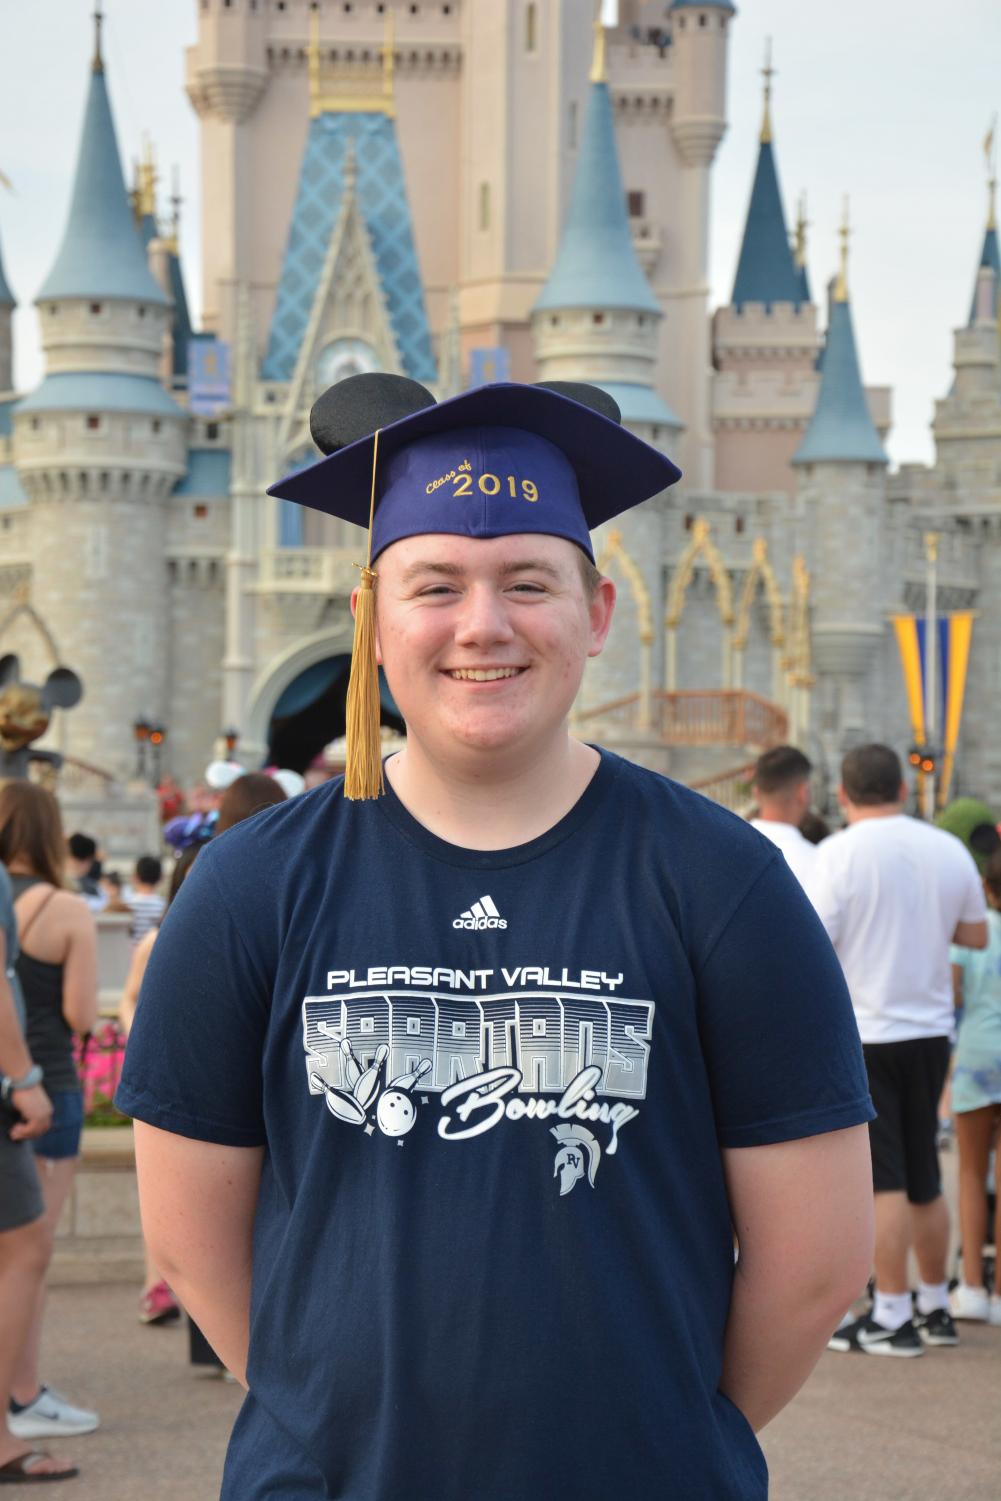 Alton Barber poses in front of the famous Cinderella Castle at Disney World